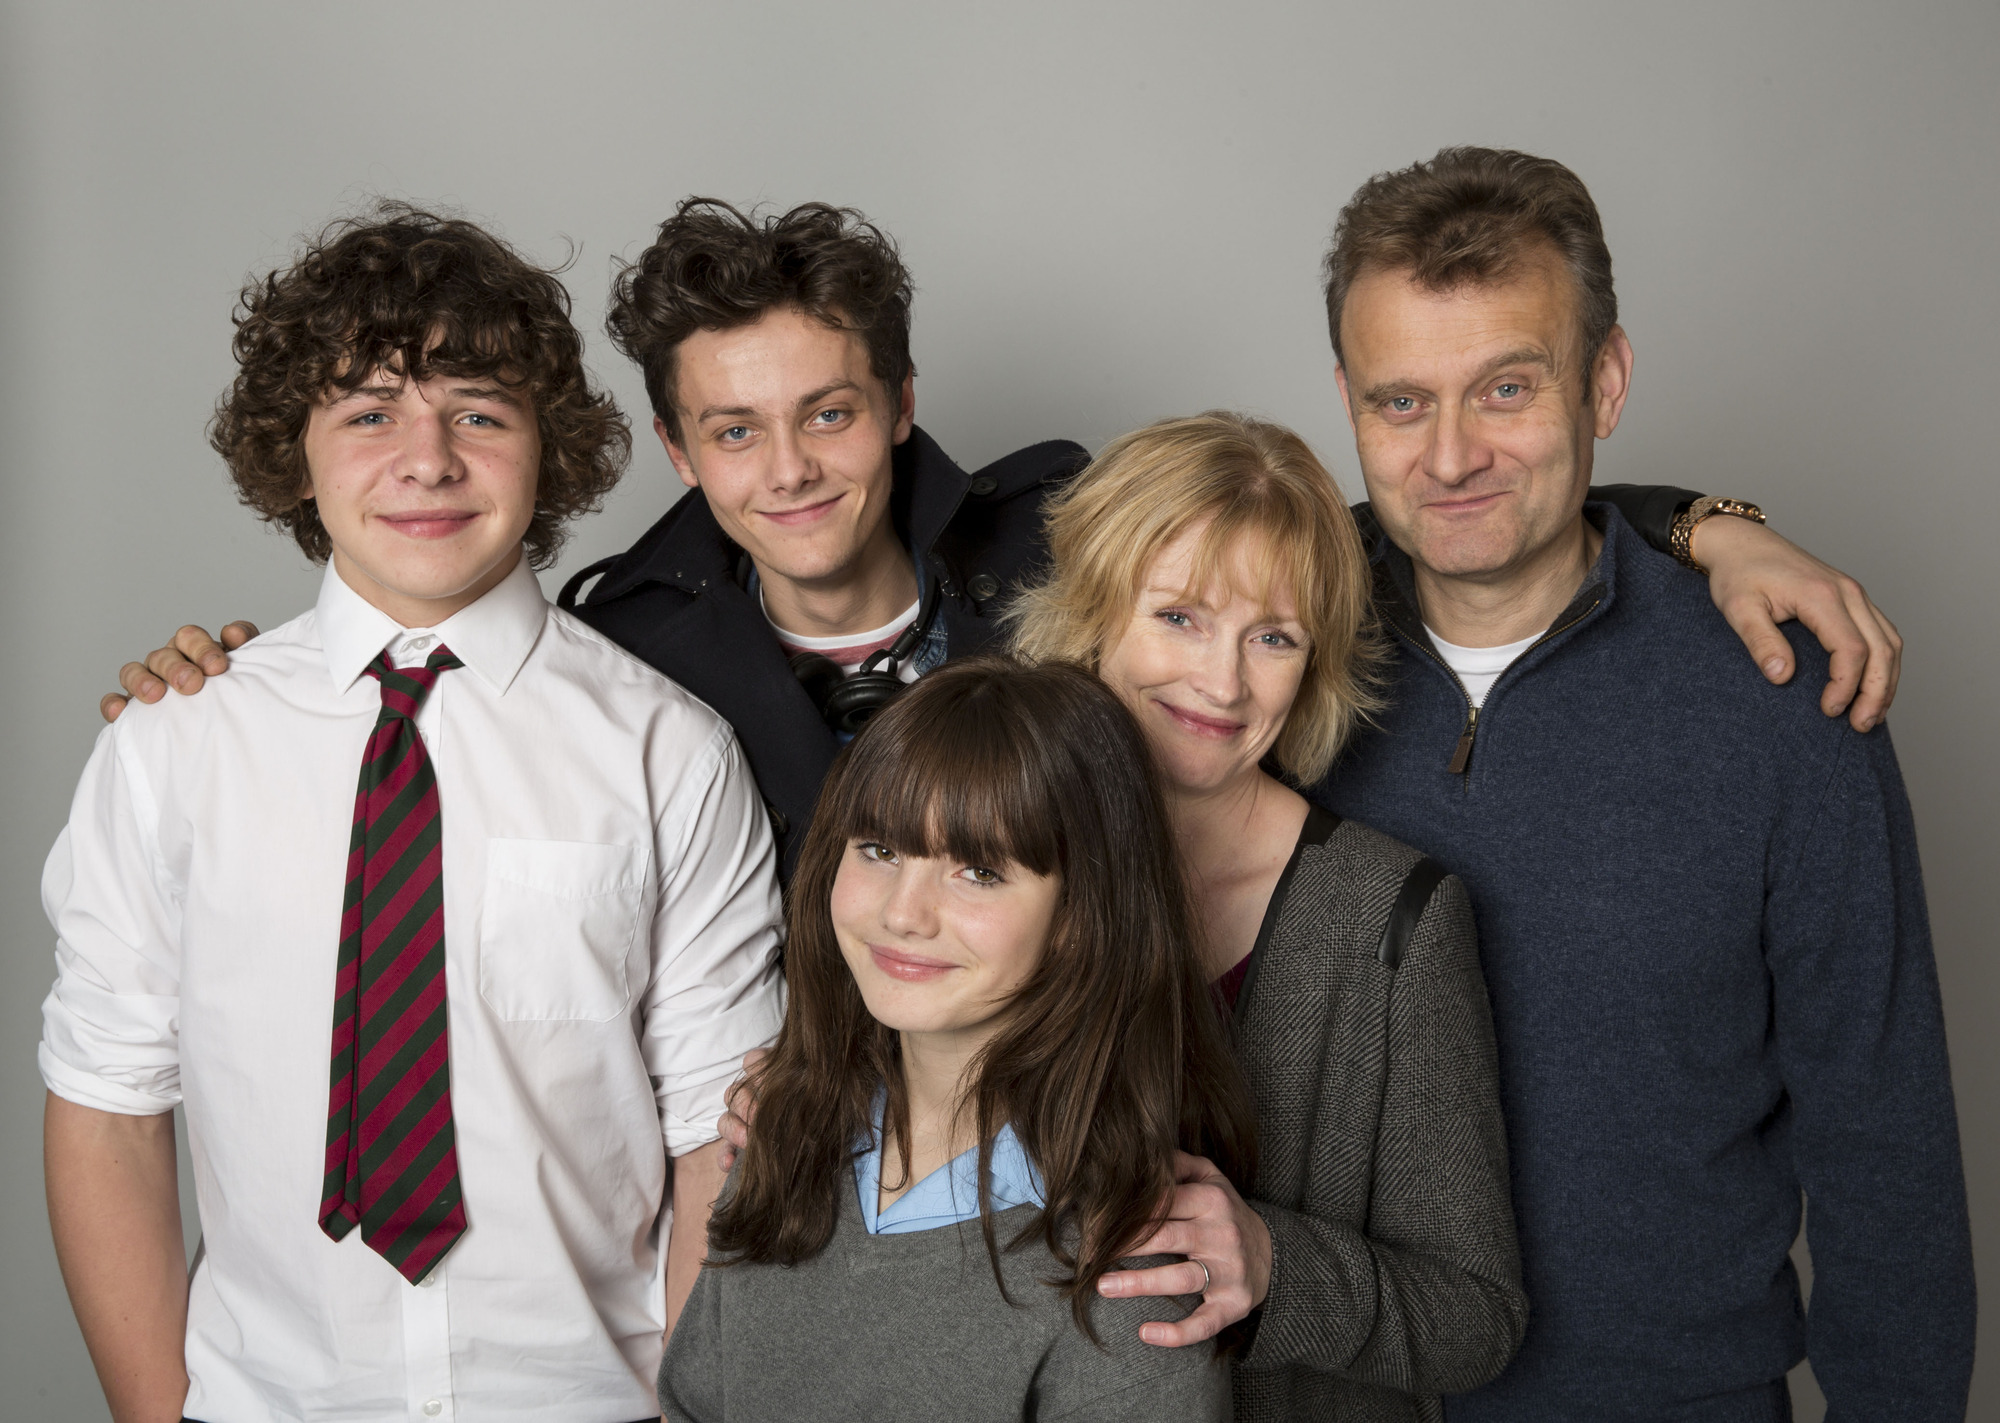 Outnumbered, episode one: 10 pearls of wisdom from the Brockmans